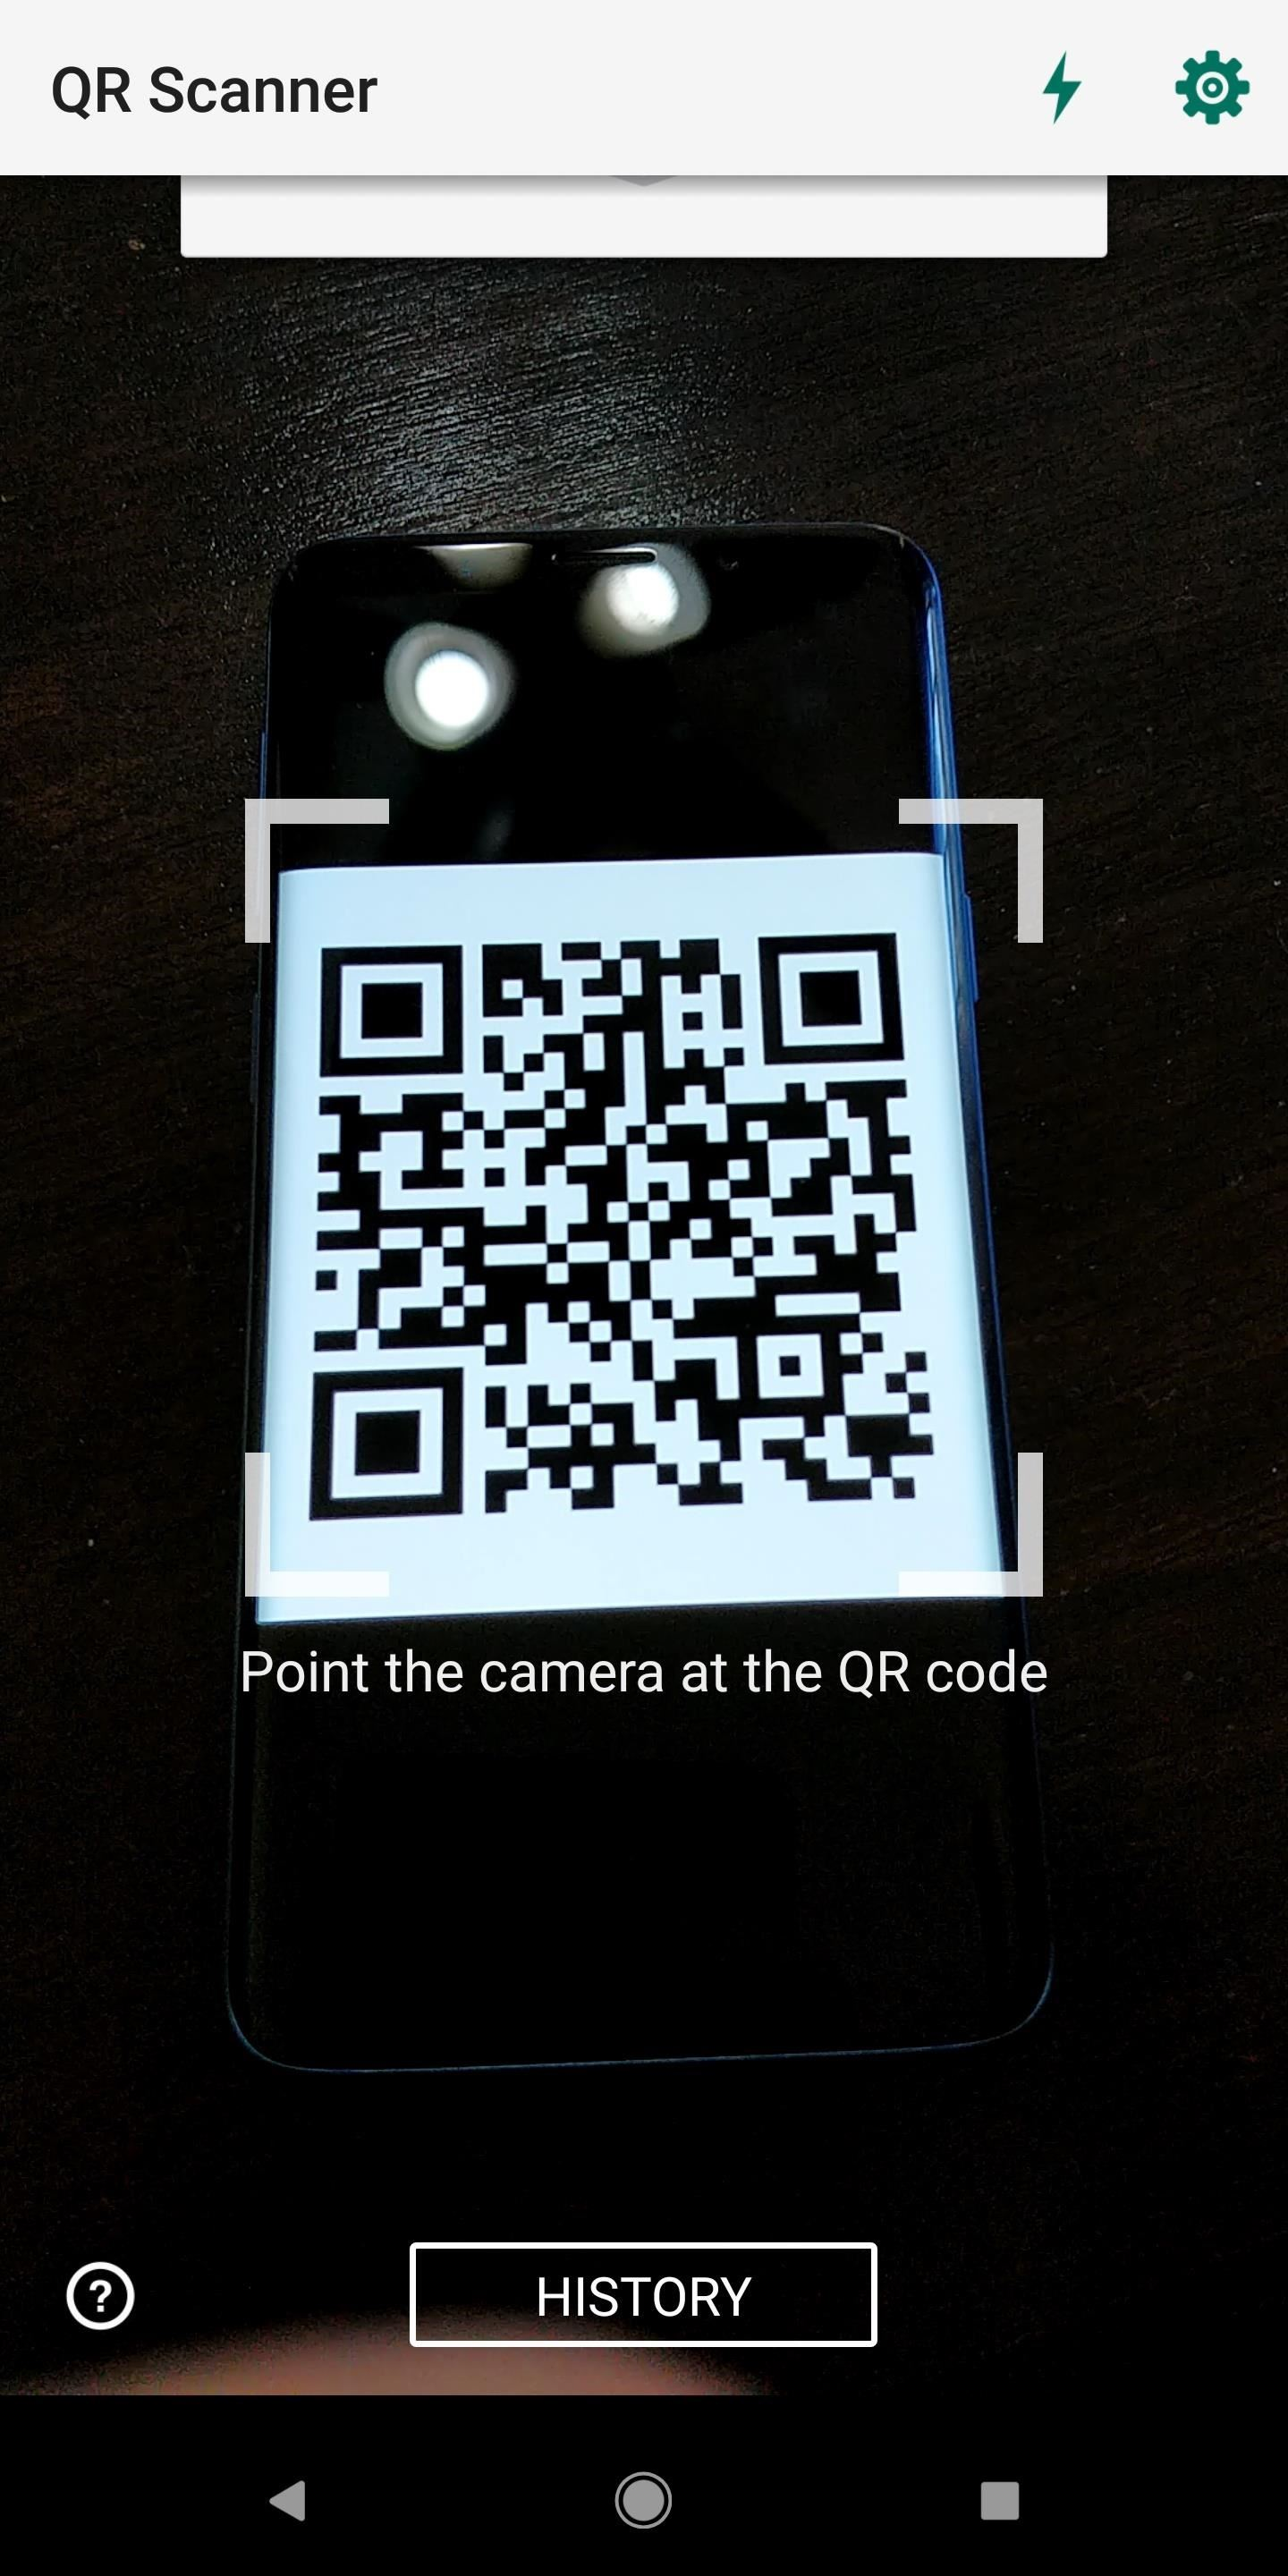 How to Easily Share Your Wi-Fi Password with a QR Code on Your Android Phone